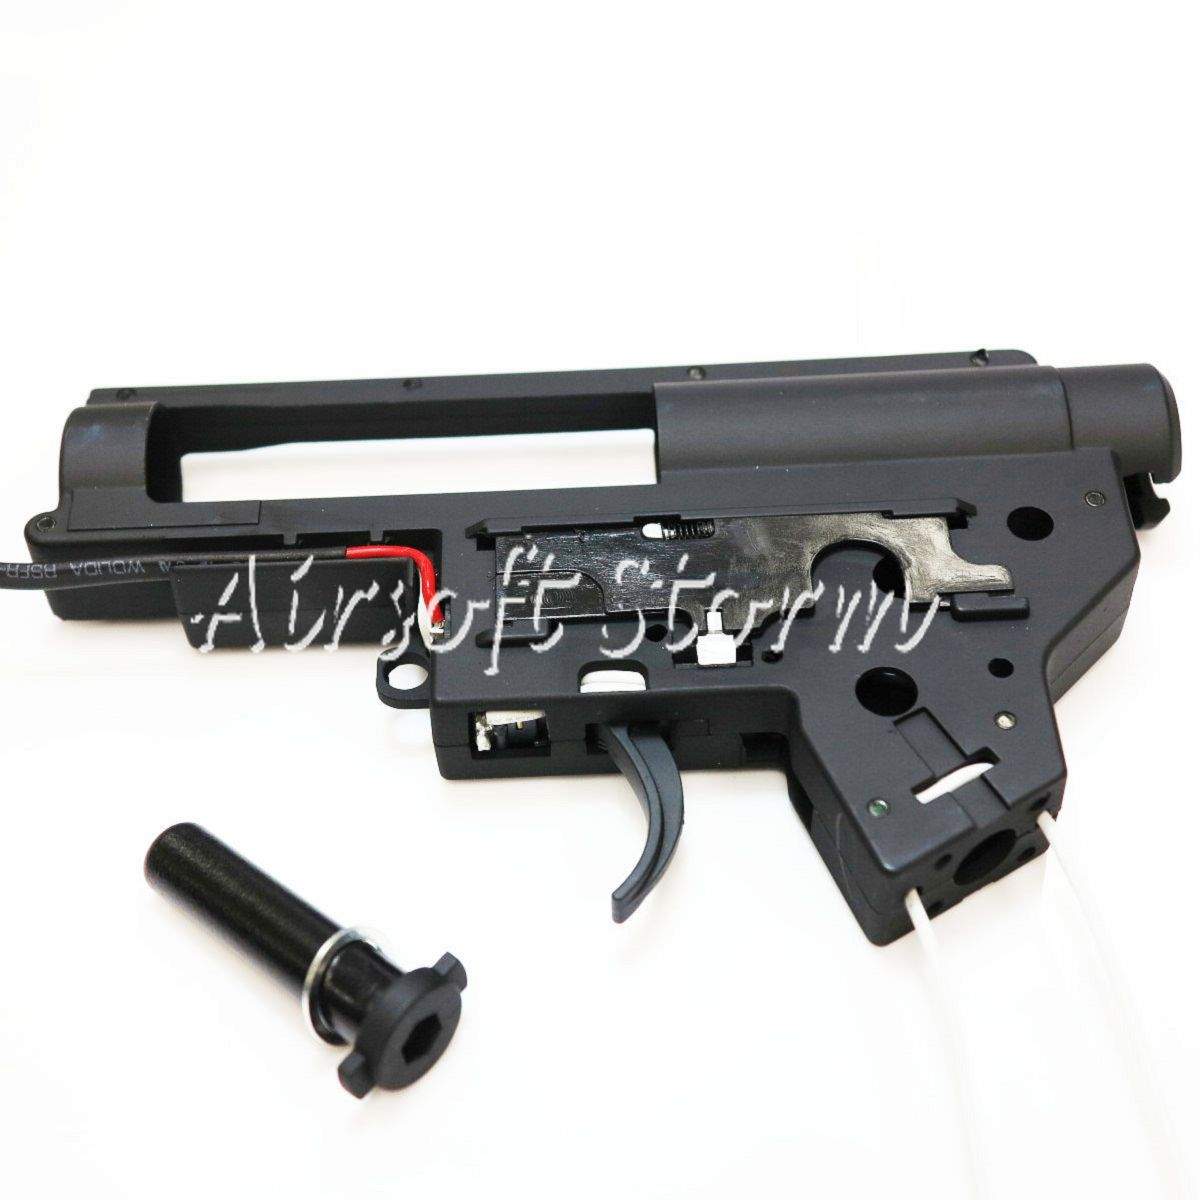 Shooting Gear Army Force 8mm Version 2 QD Gearbox Shell for Tokyo Marui M4/M16 Series AEG Front Line